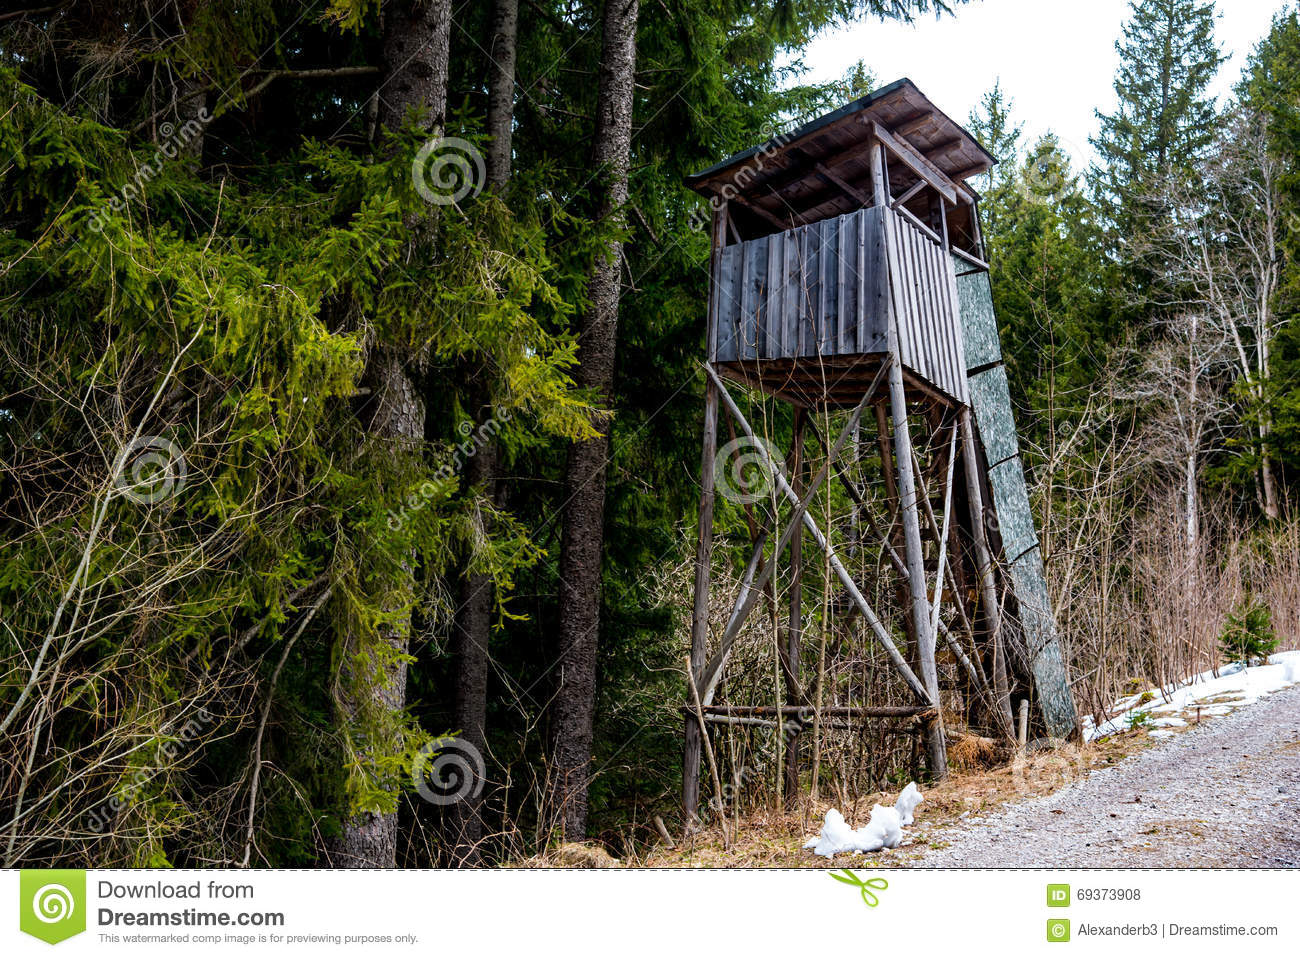 Elevated wooden platform stock photo image 69373908 for Deer hunting platforms